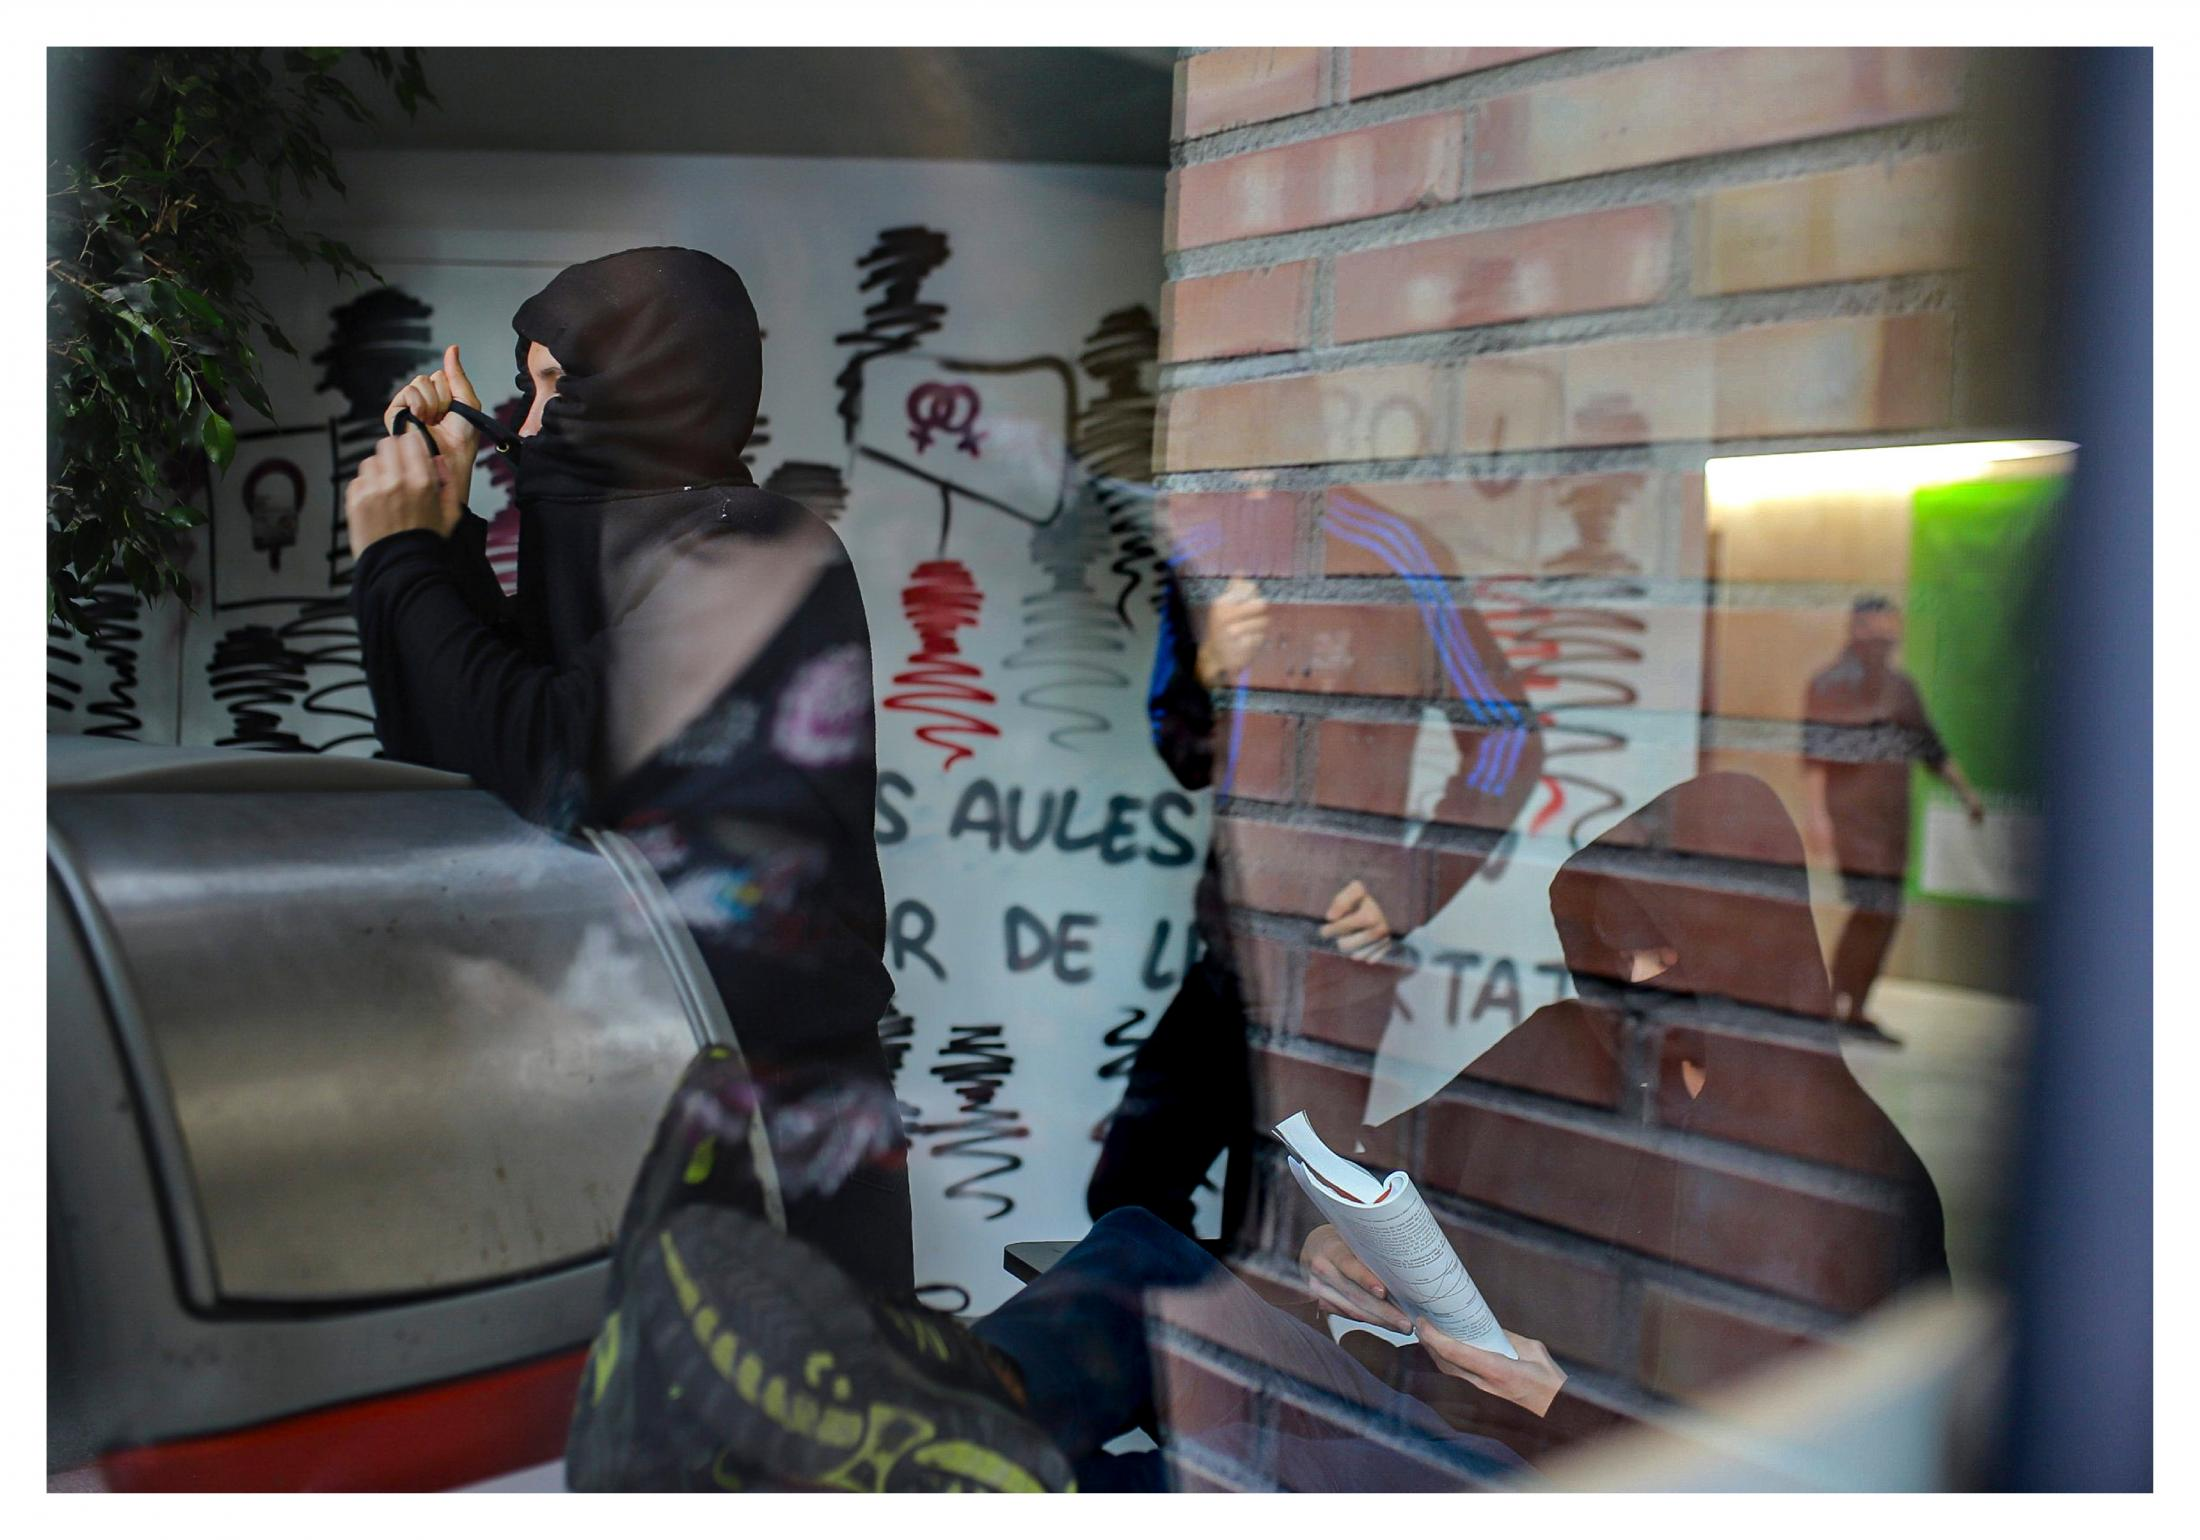 Students at the Pompeu Fabra University in Barcelona have occupied their university as part of the campaign to free the political prisoners in Catalonia, including those who have been jailed during the protests. Many of the prisoners are students themselves. October 2019, Barcelona, Spain.